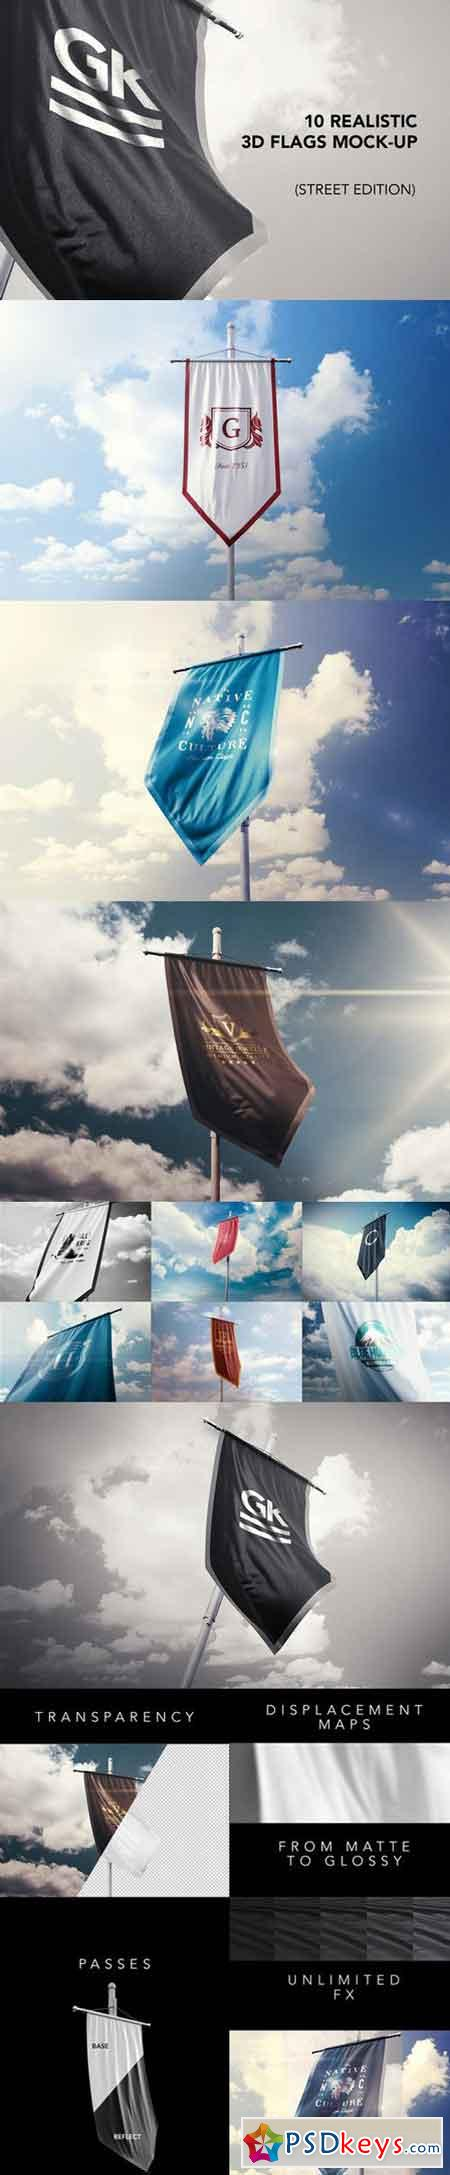 10 Realistic 3D Flag Mock Up`s v.2 498579